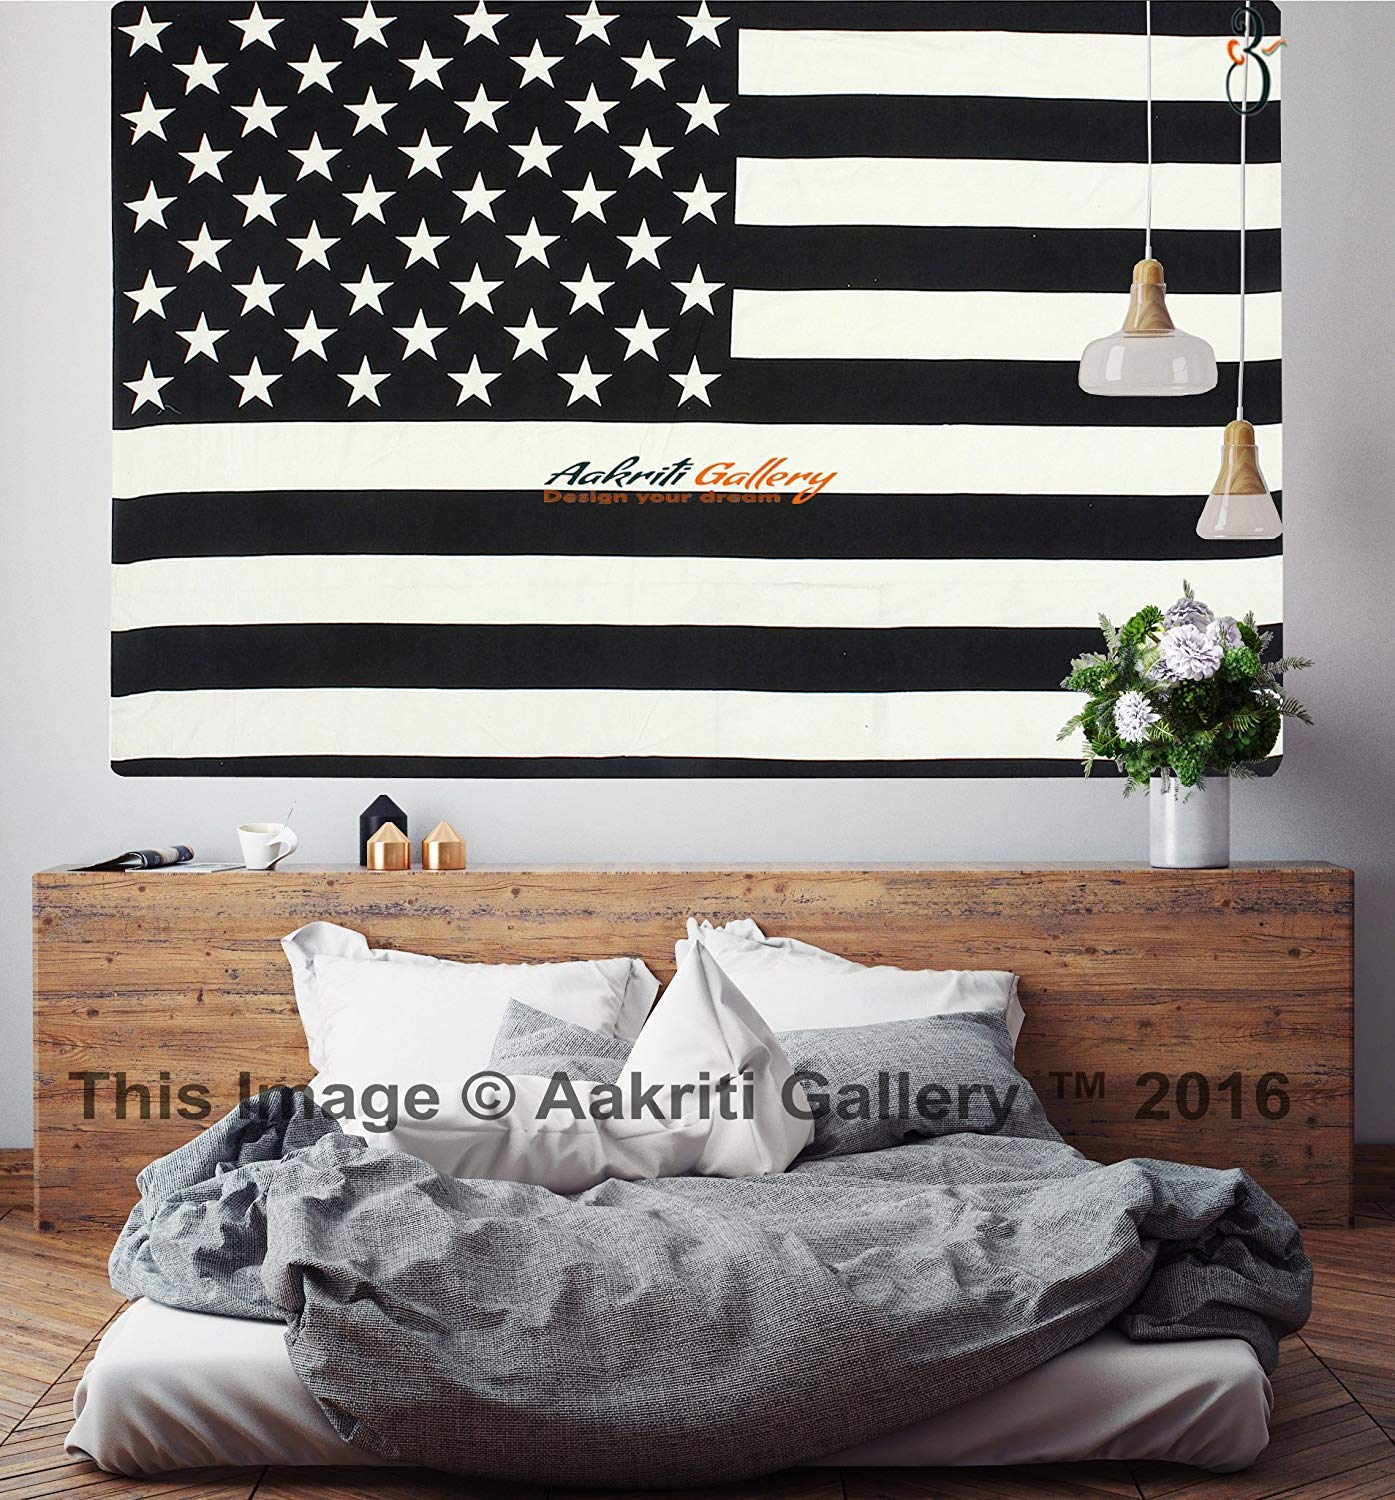 Aakriti Gallery Black and White Twin Tapestry Hippie Wall Hanging Art Decor Single Mandala Tapestry Hippie Dorm 84X55 inches (Flag)